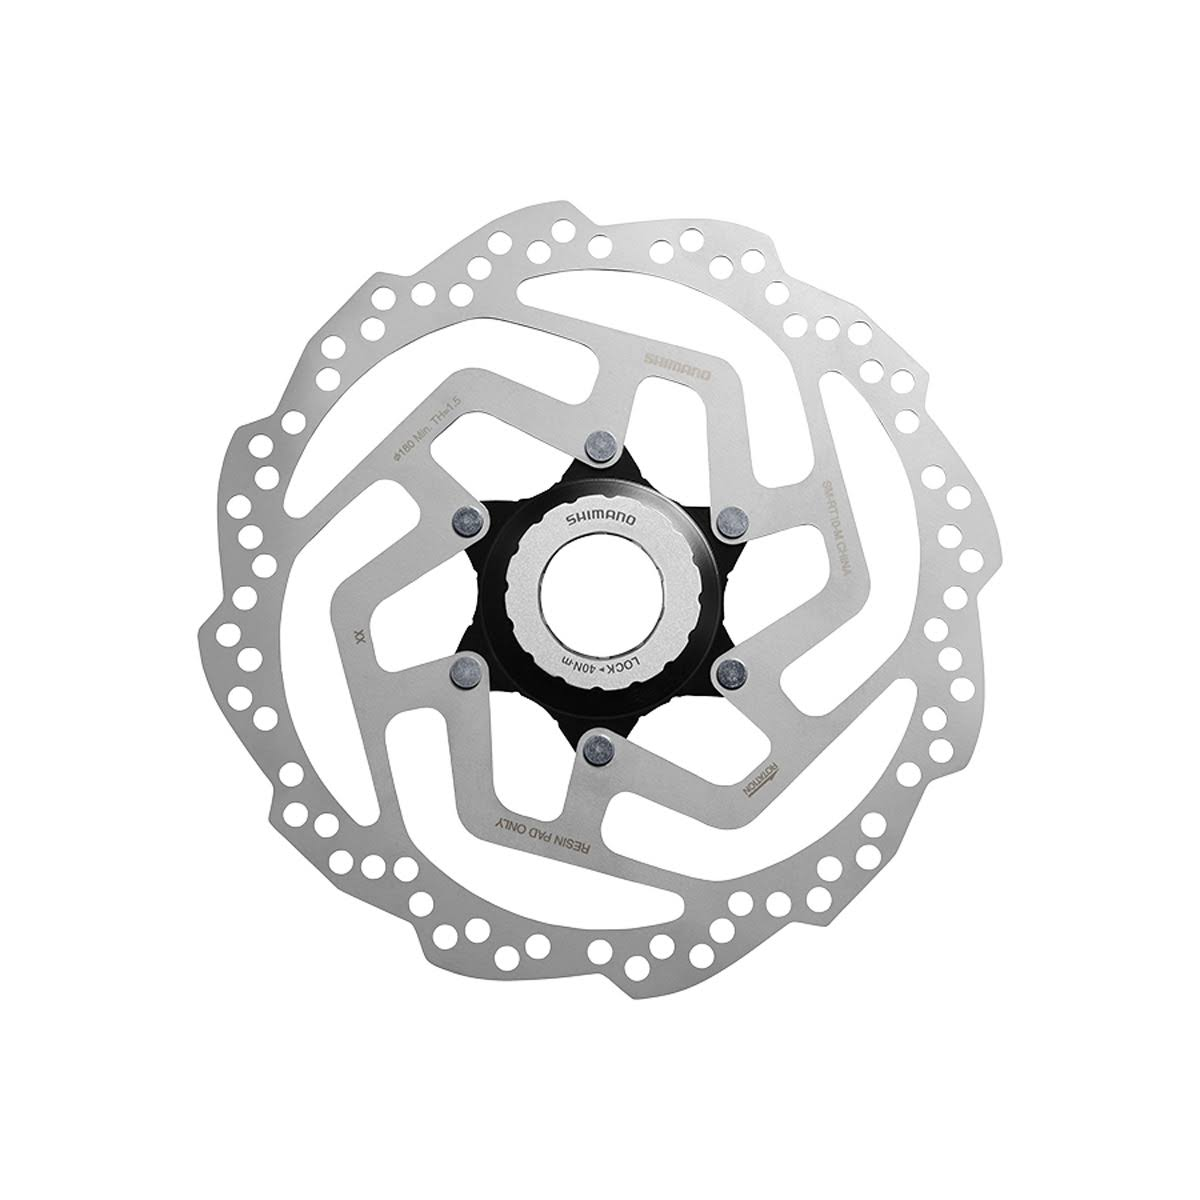 Shimano SM-RT10 Disc Rotor - 160mm